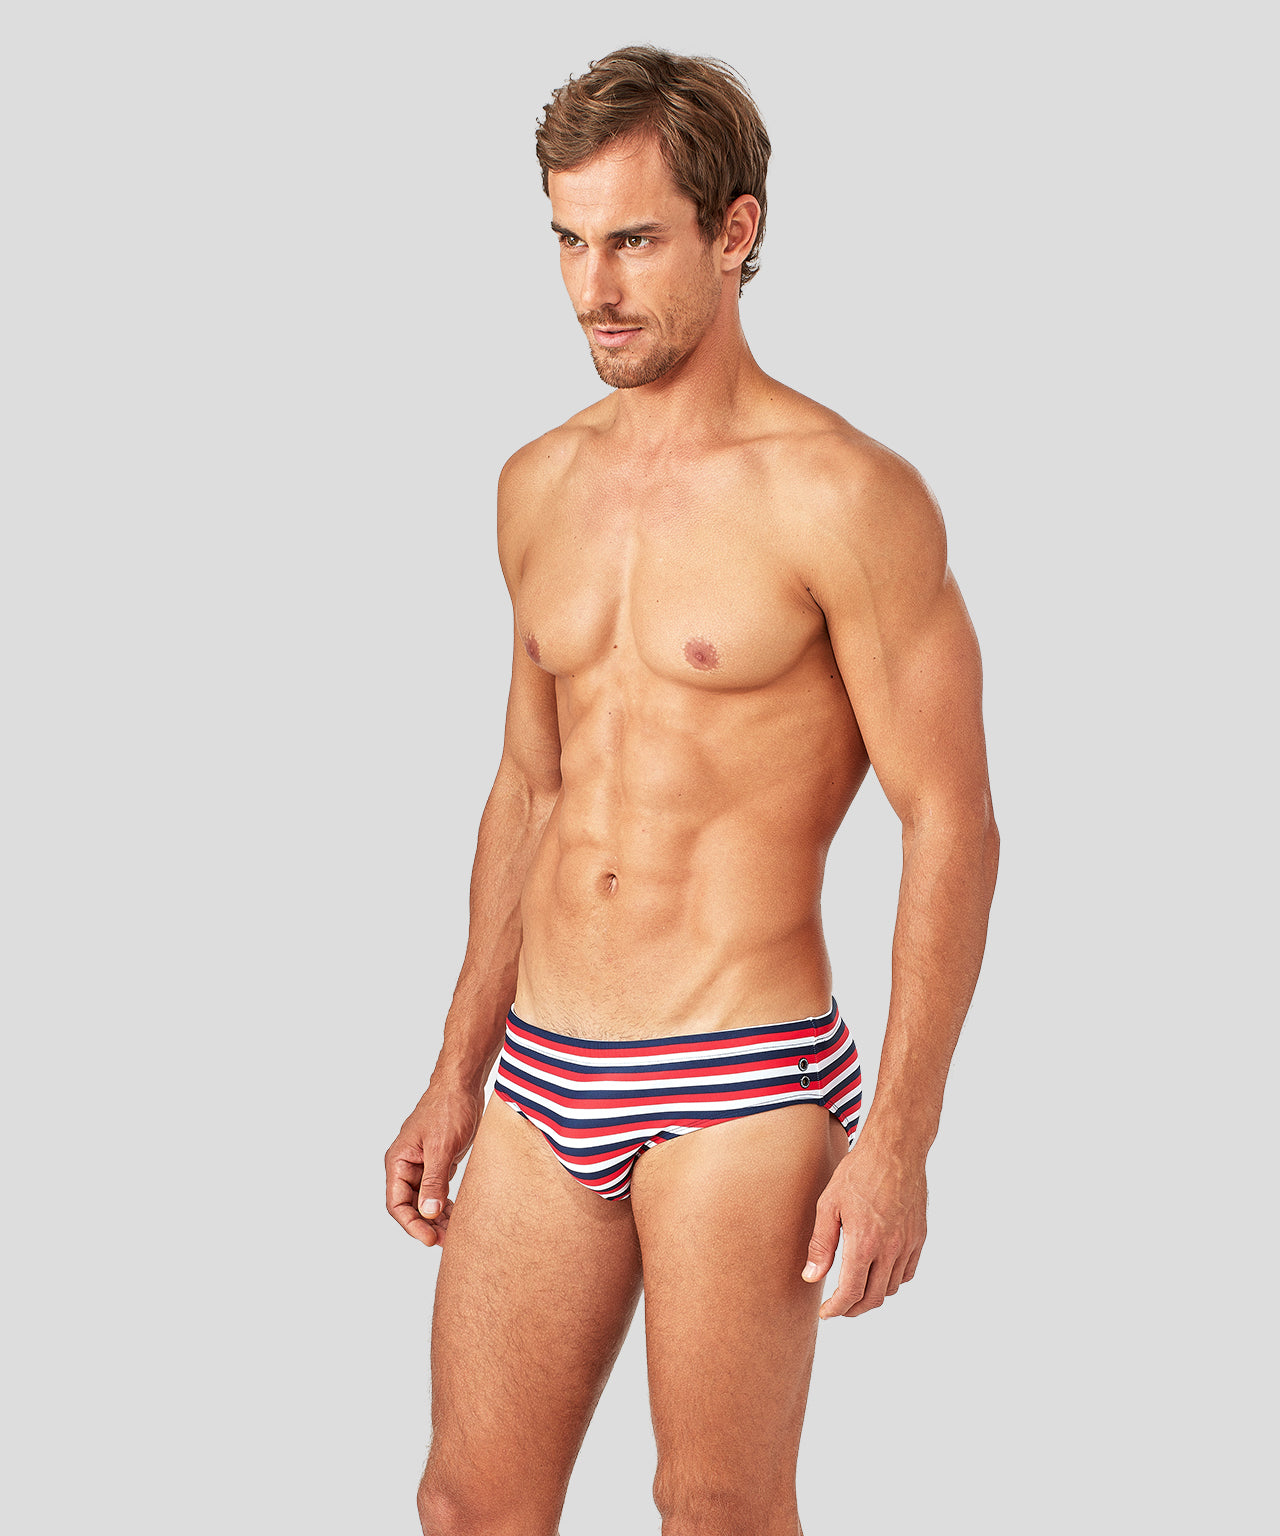 Swim Trunks Horizontal Thin Stripes - navy/red/white